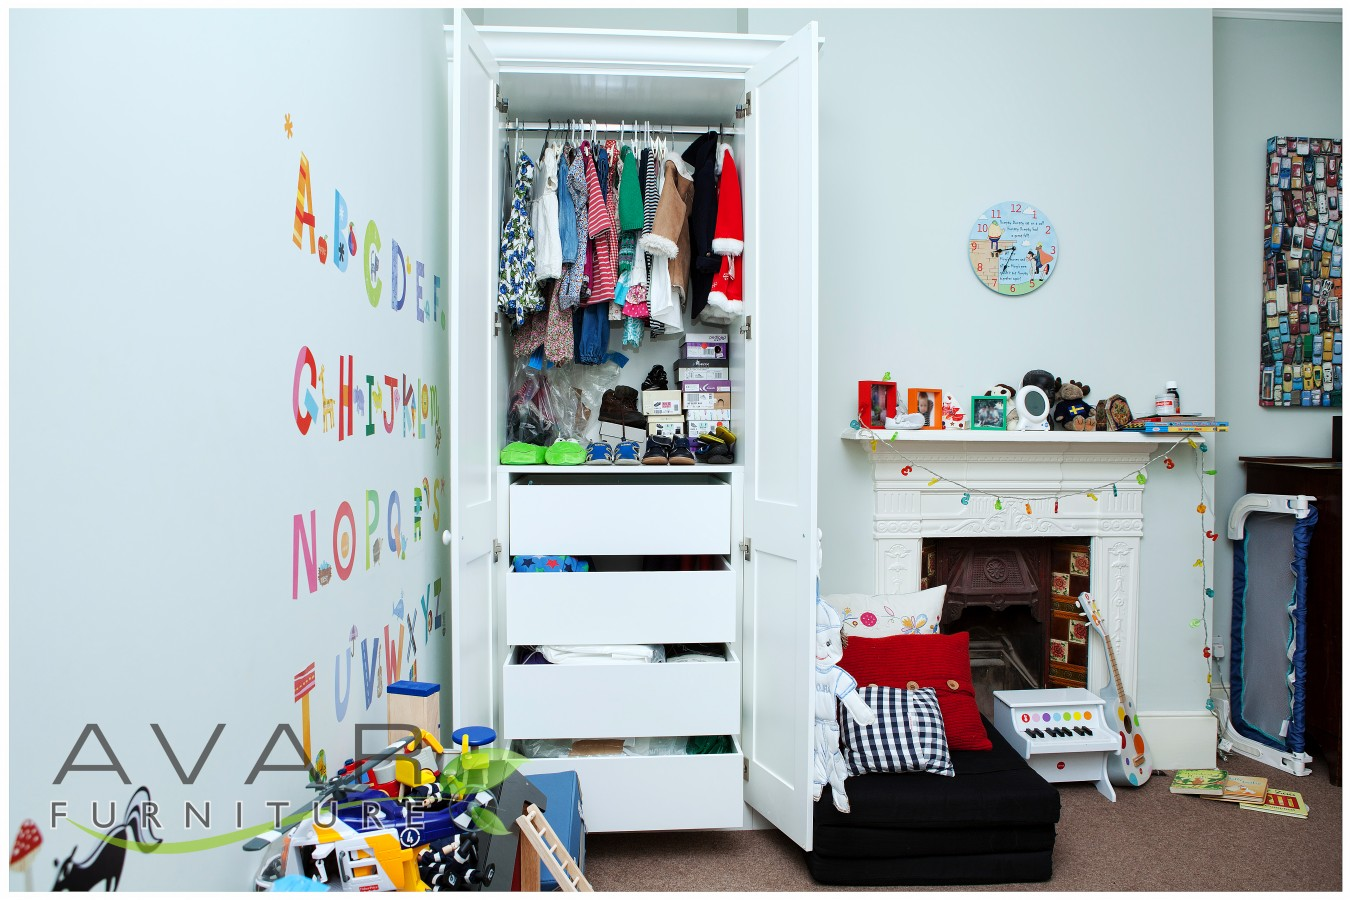 Fitted wardrobe ideas gallery 9 north london uk avar furniture for Bedroom furniture soft close drawers